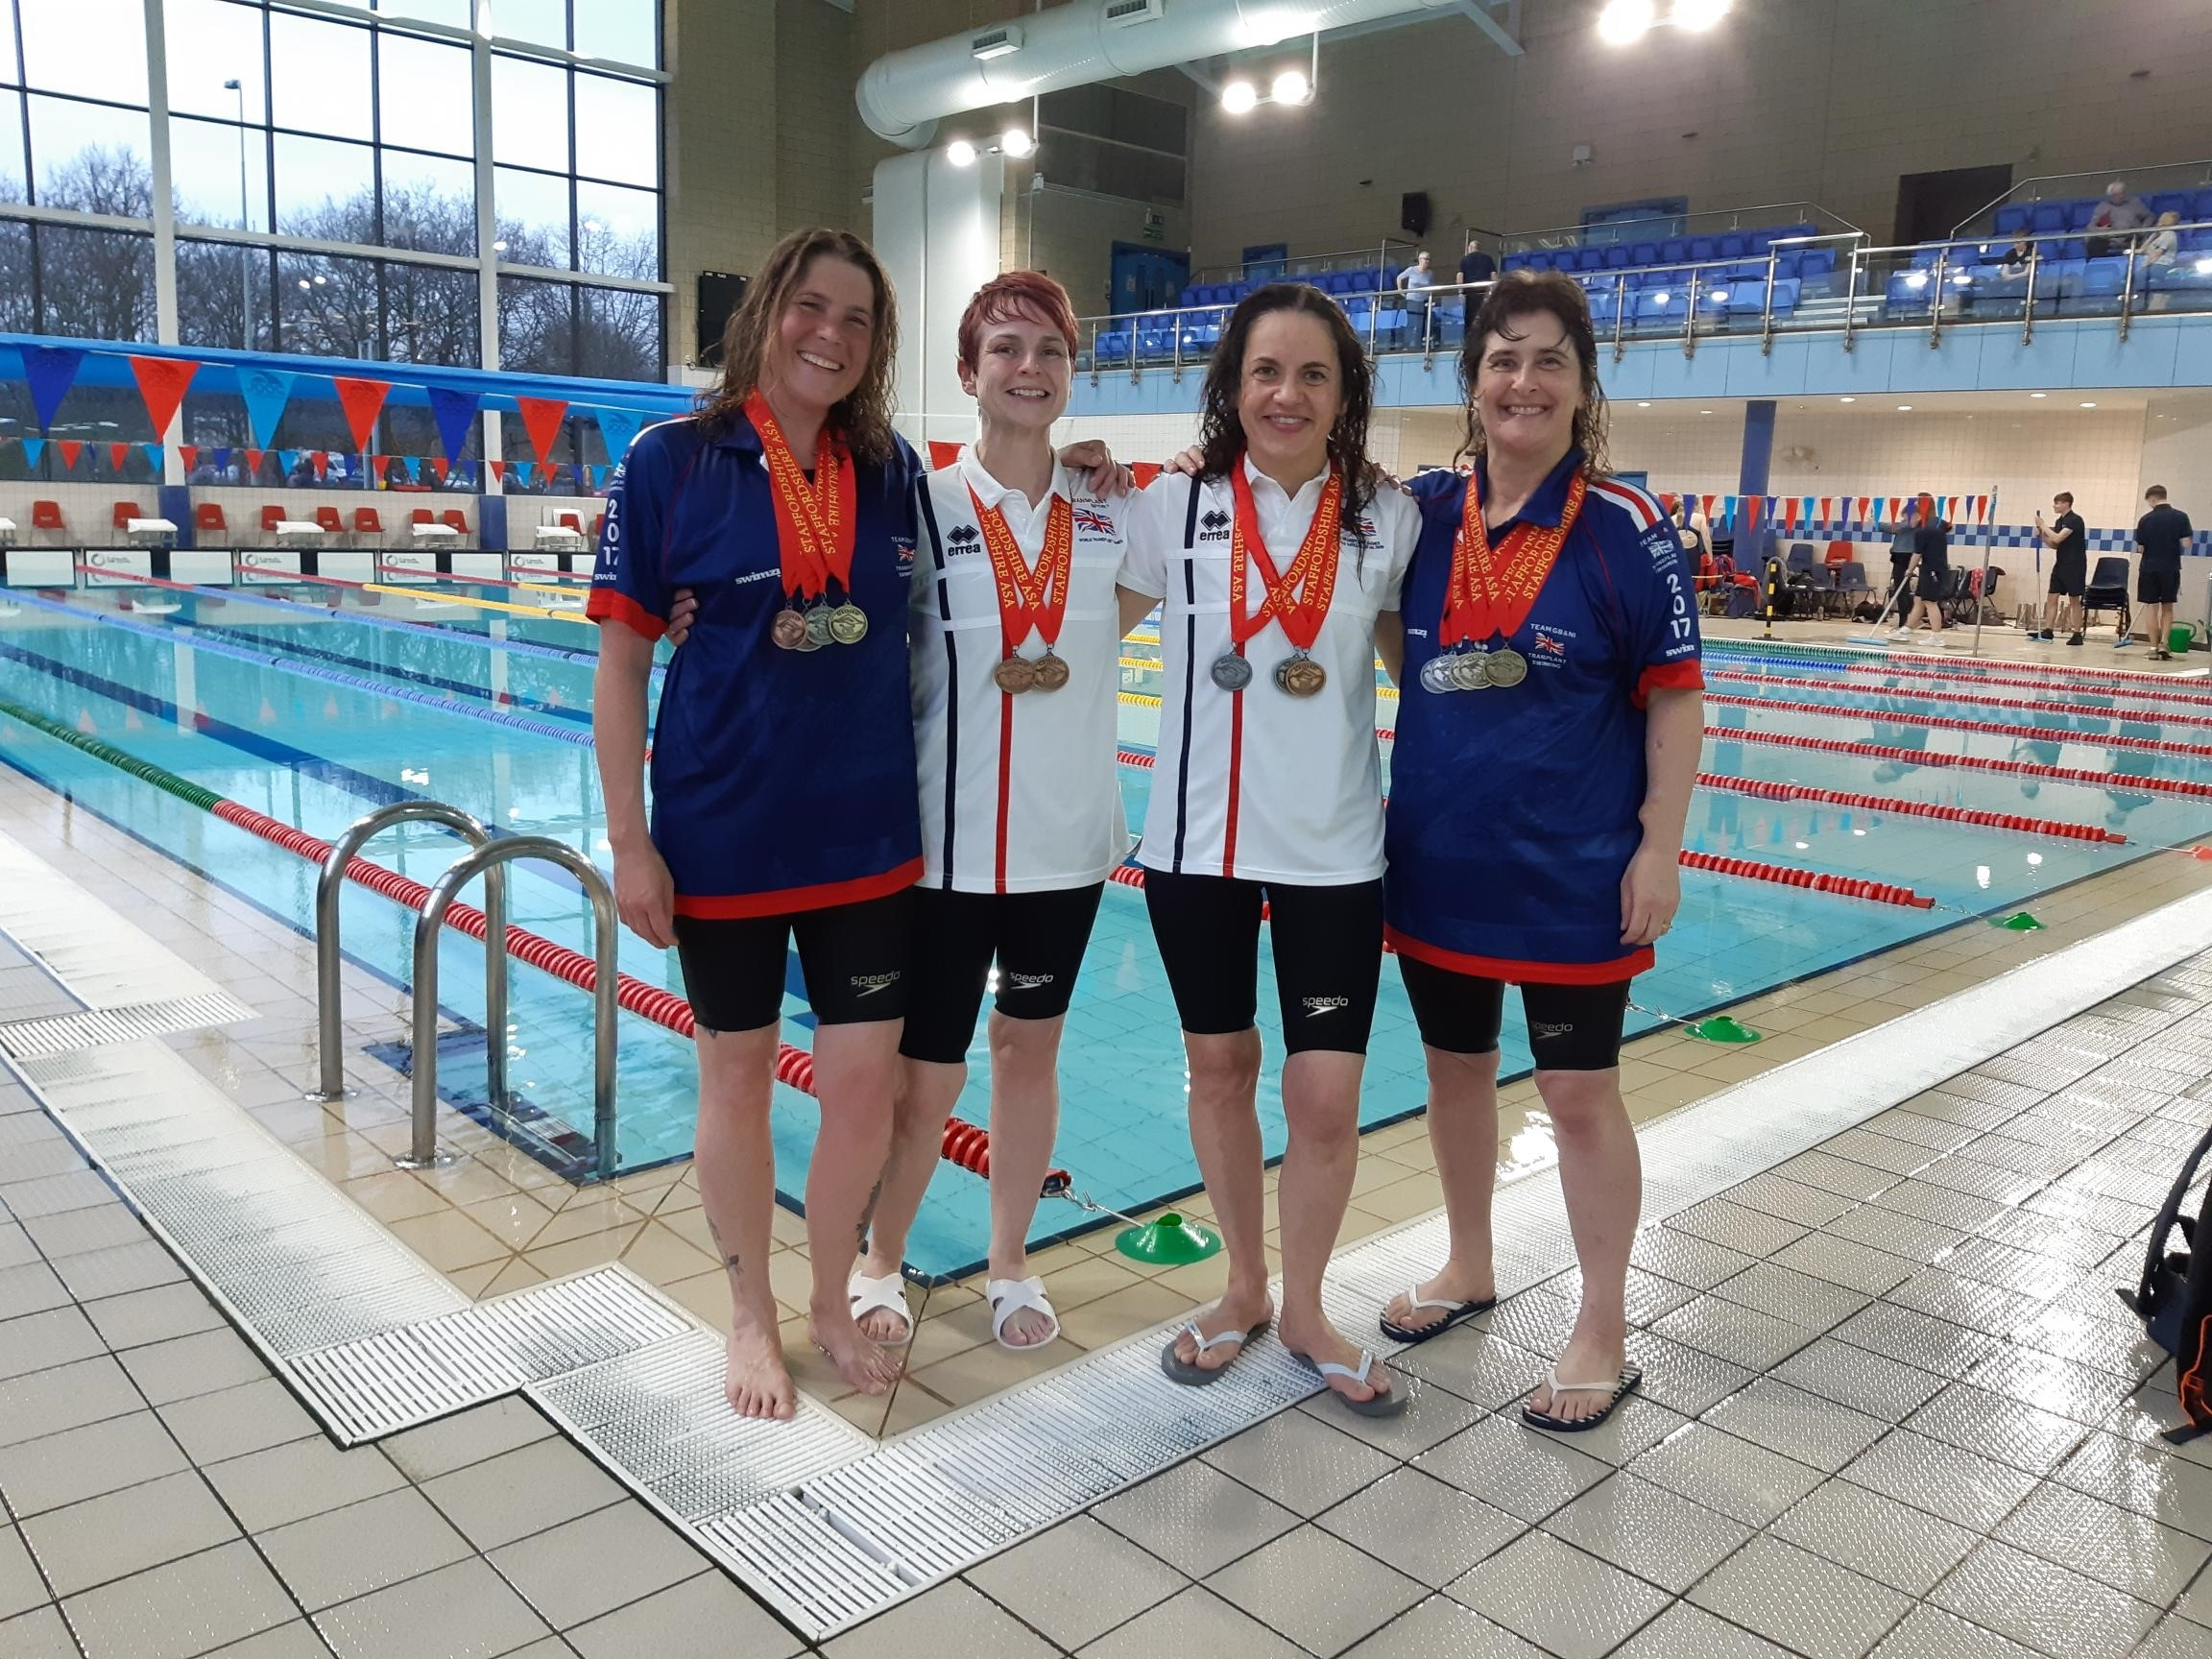 The Transplant Sport Swimming Club enjoyed success and raised awareness in Staffordshire.